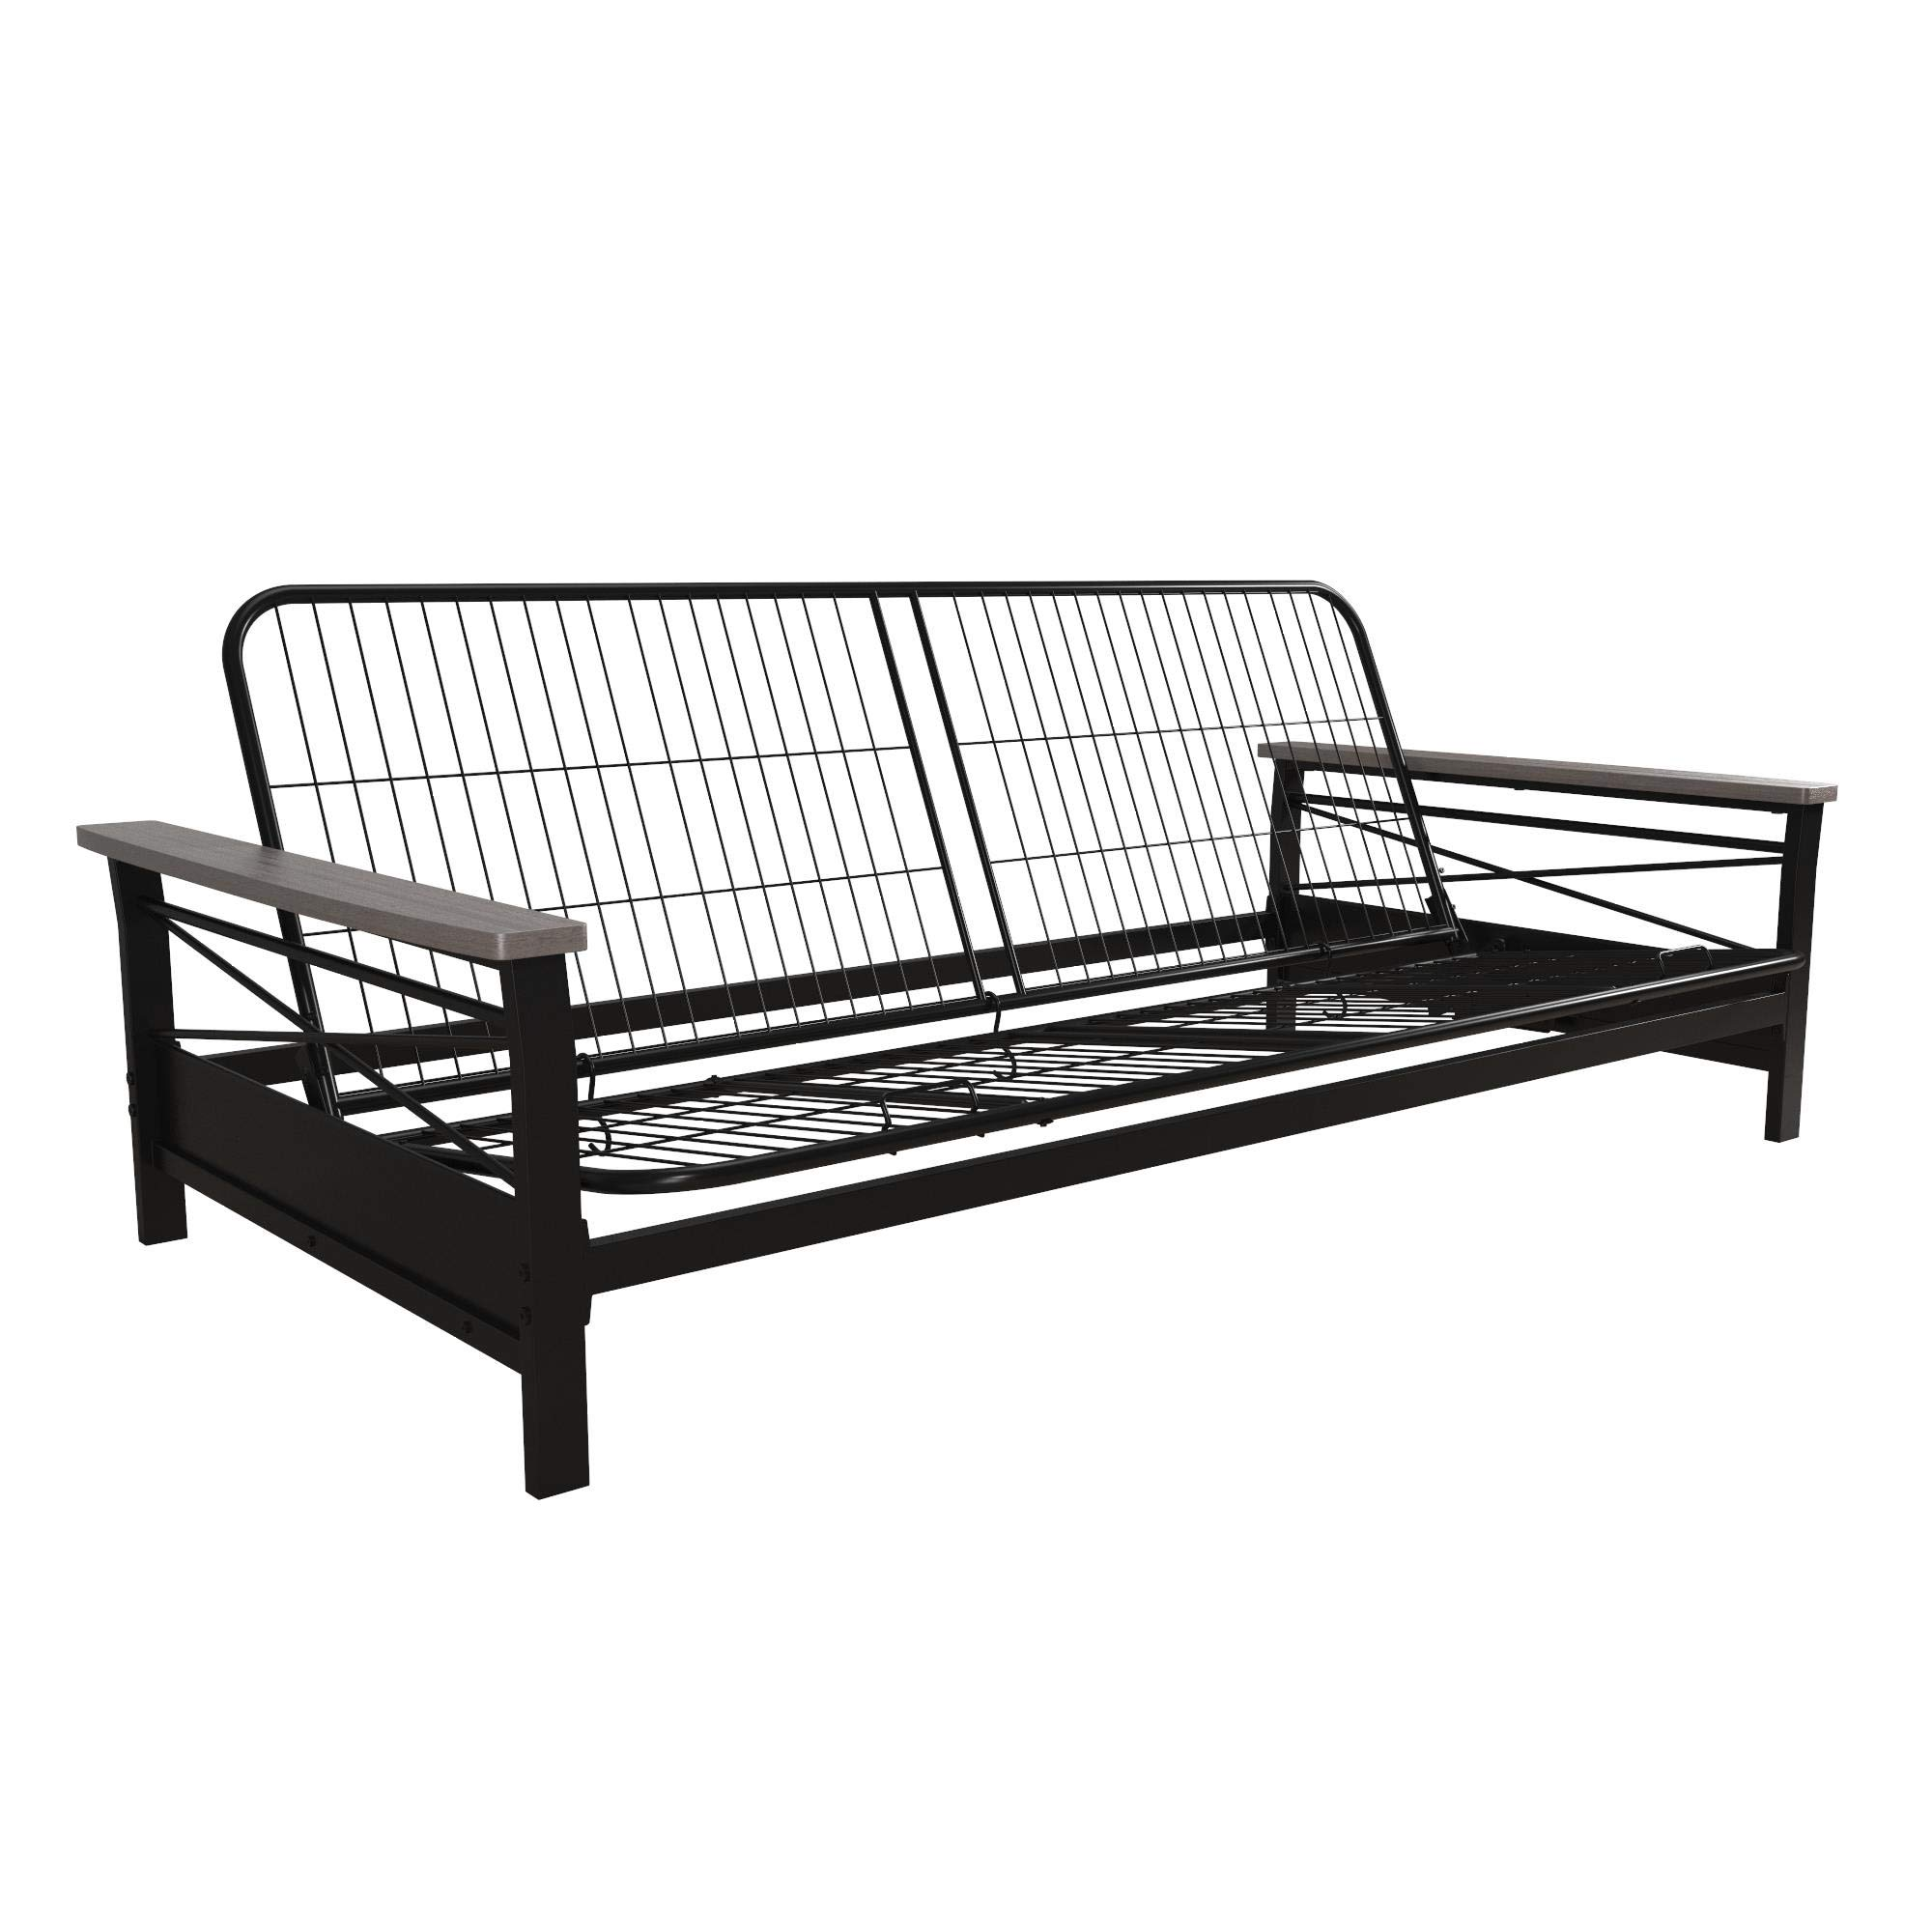 DHP Nadine Metal Futon Frame with Grey Wood Armrests, Full Size, Mattress Not Included by DHP